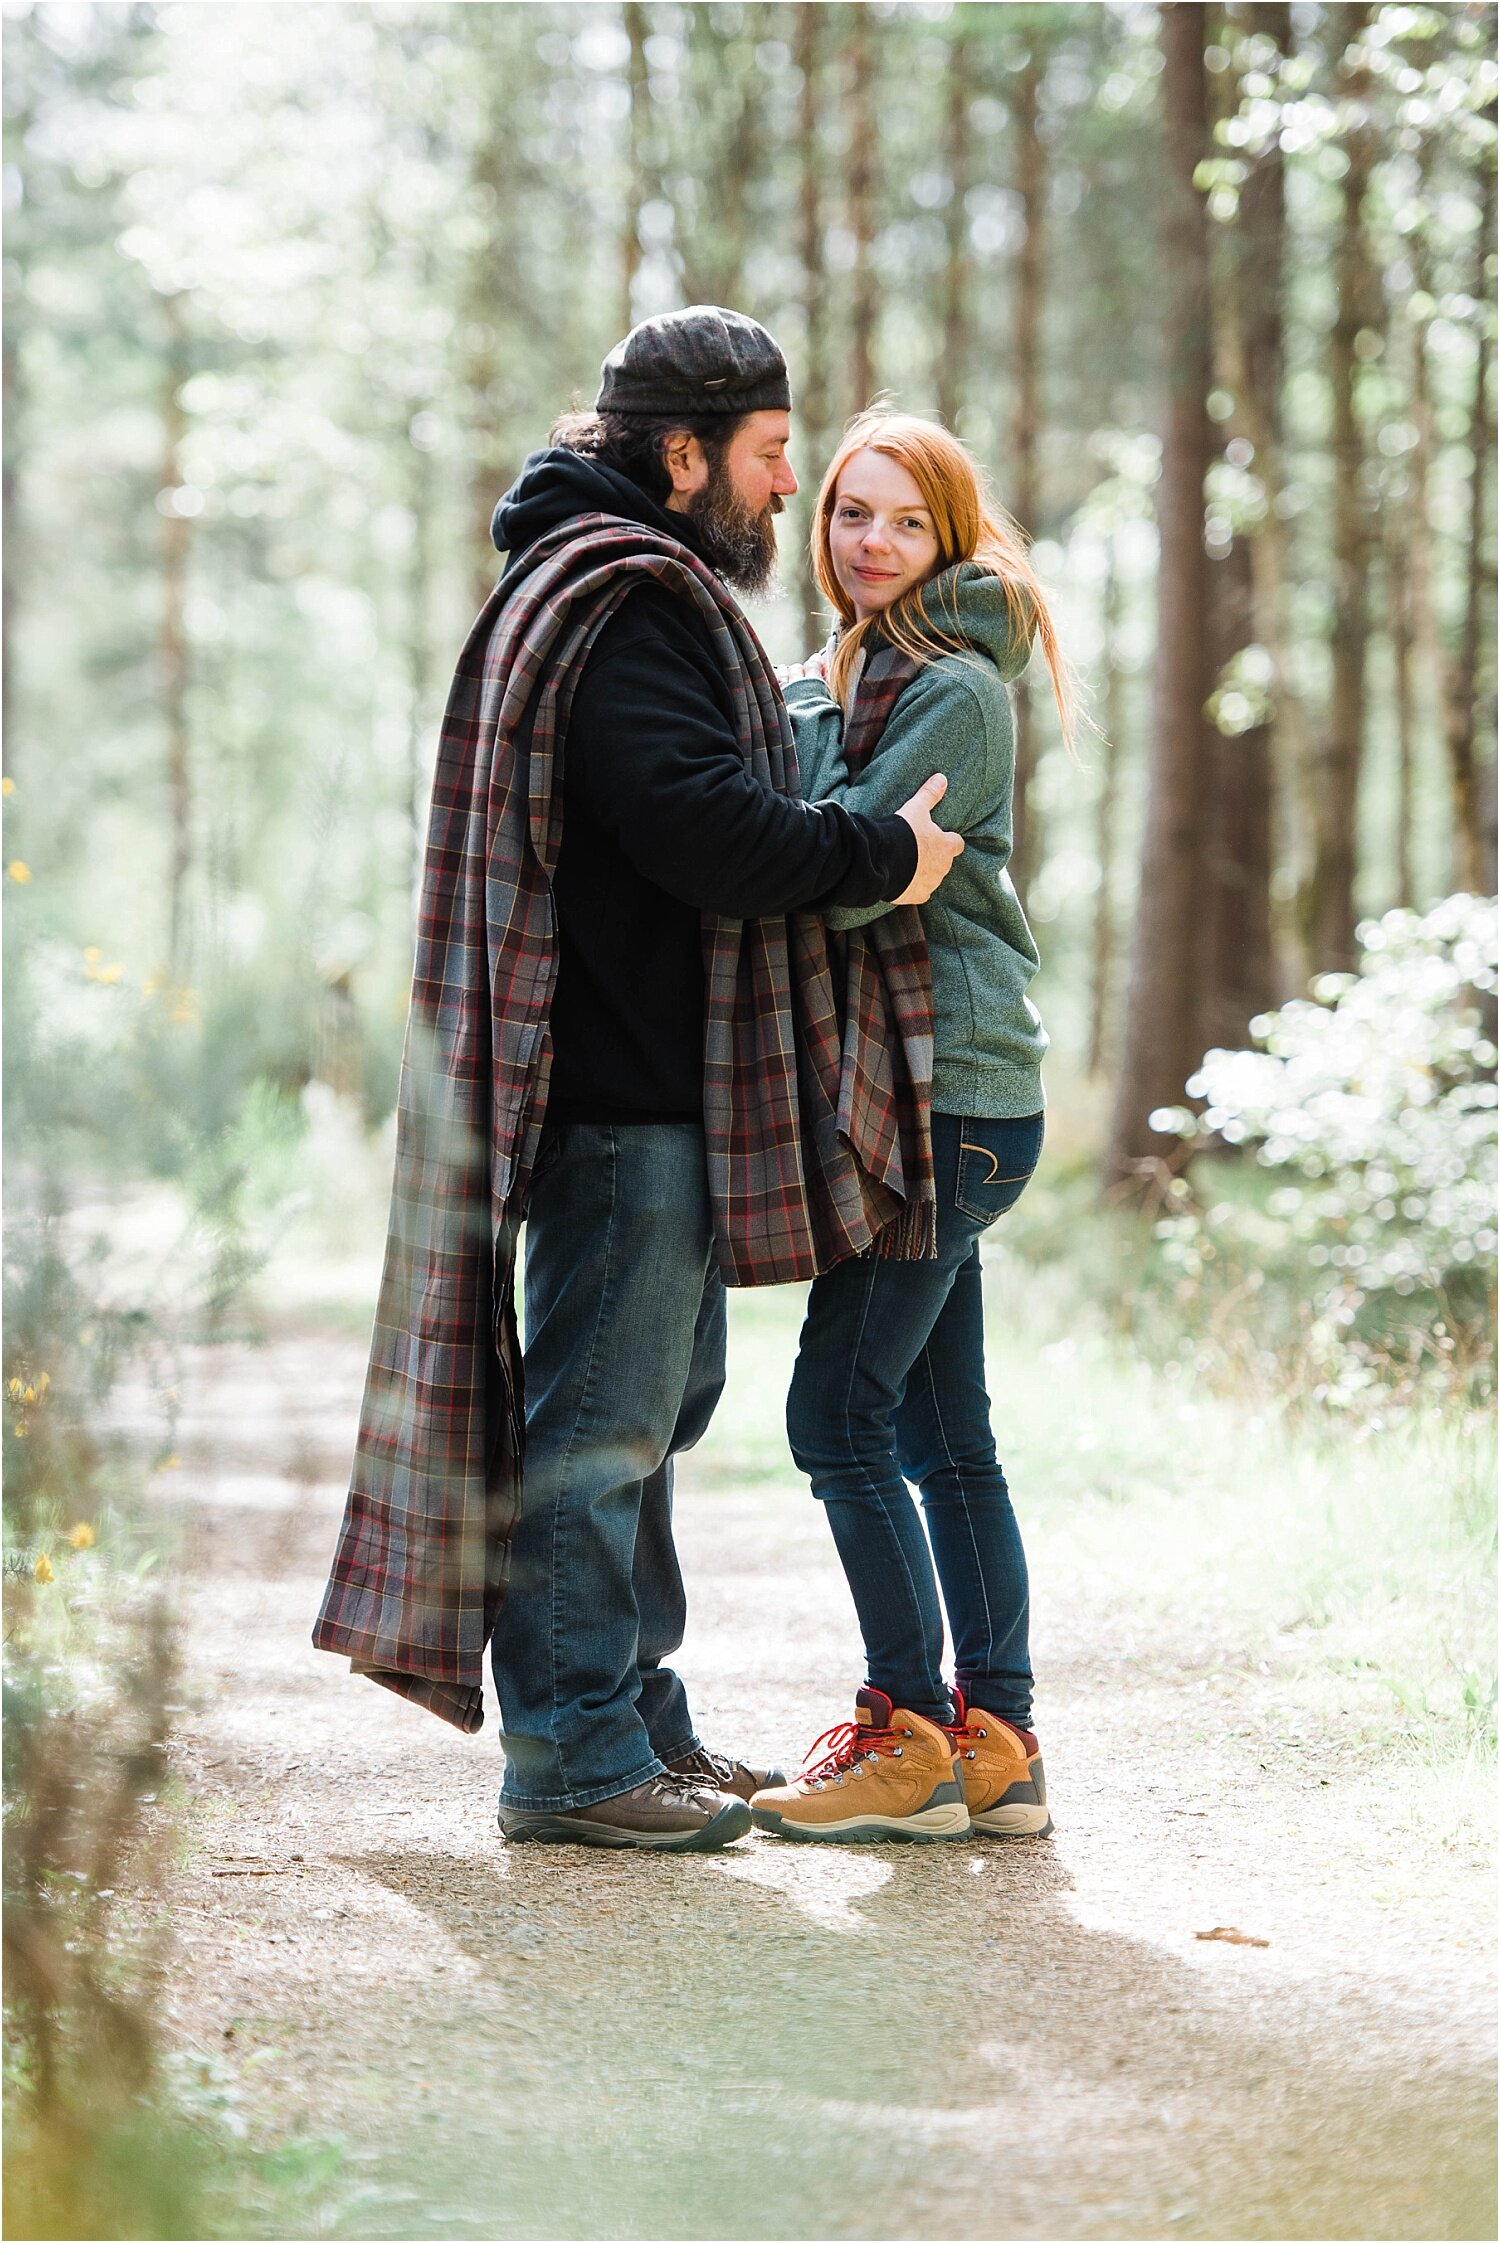 Wolf + Lea-Outlander-Inspired-Elopement-Wedding-Scotland-Day-After-Session_Gabby Chapin Photography_070.jpg